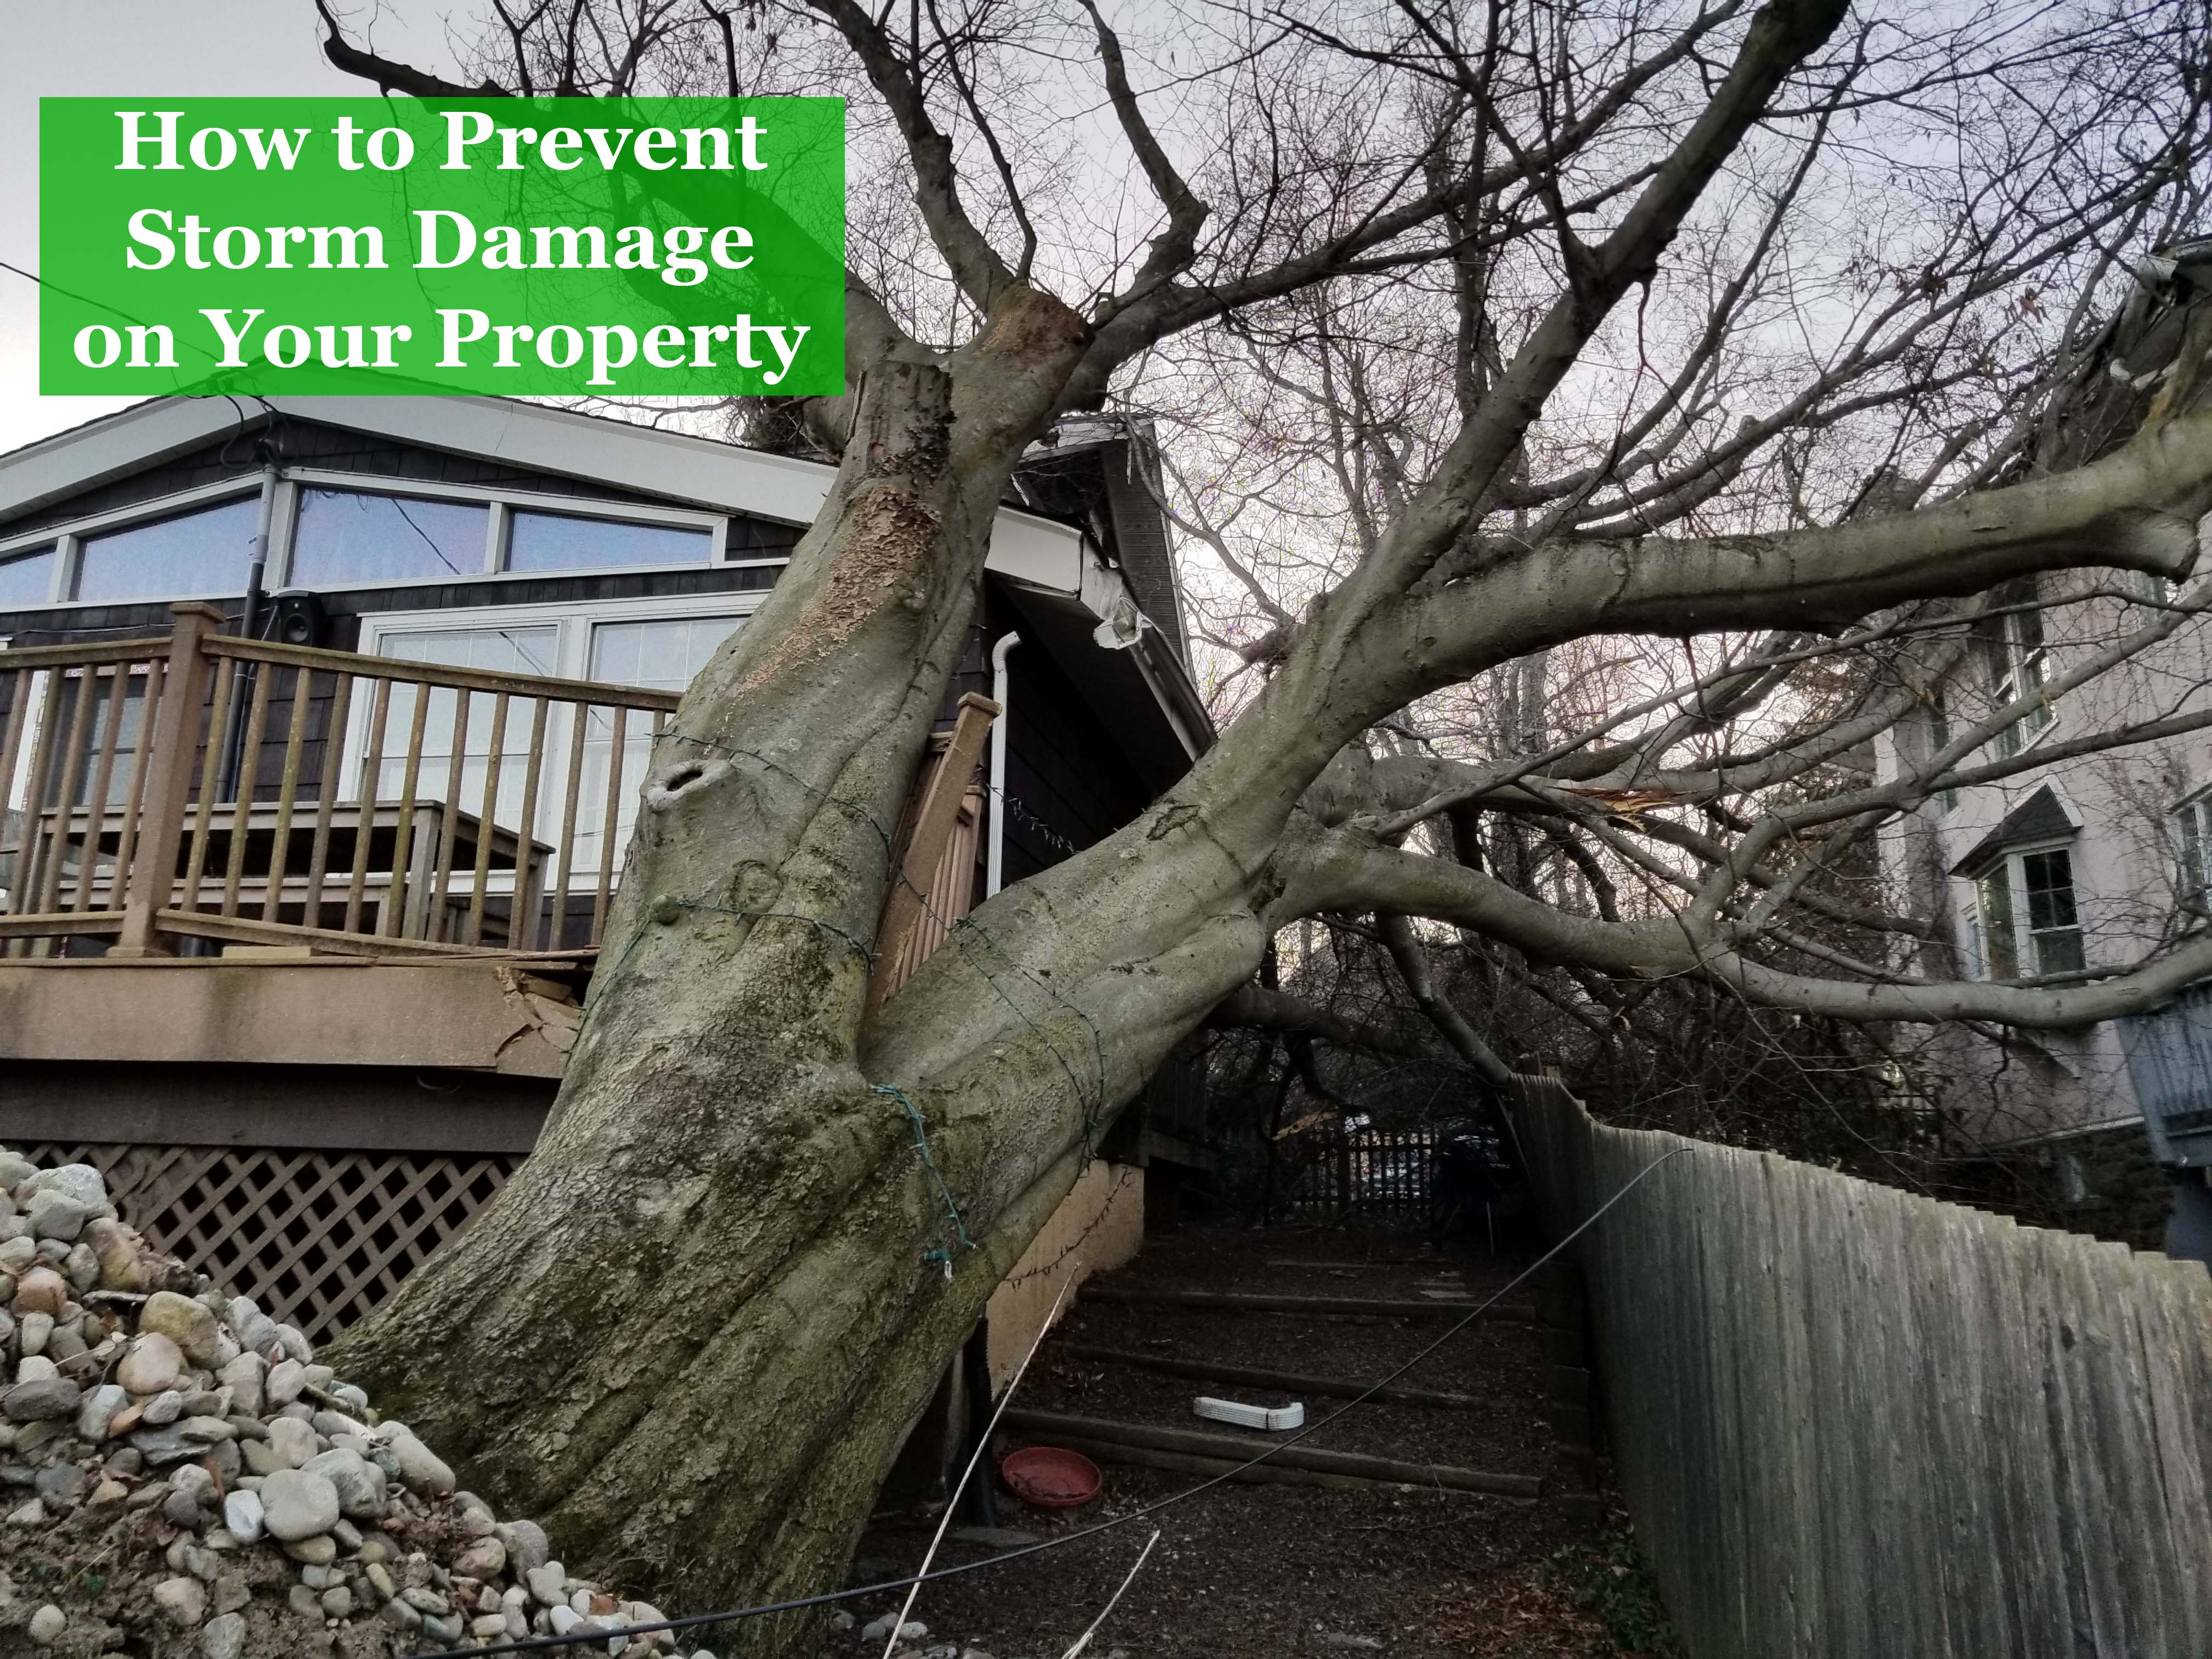 2018-How-To-Prevent-Storm-Damage-on-you-Property-Blog-Header.jpg